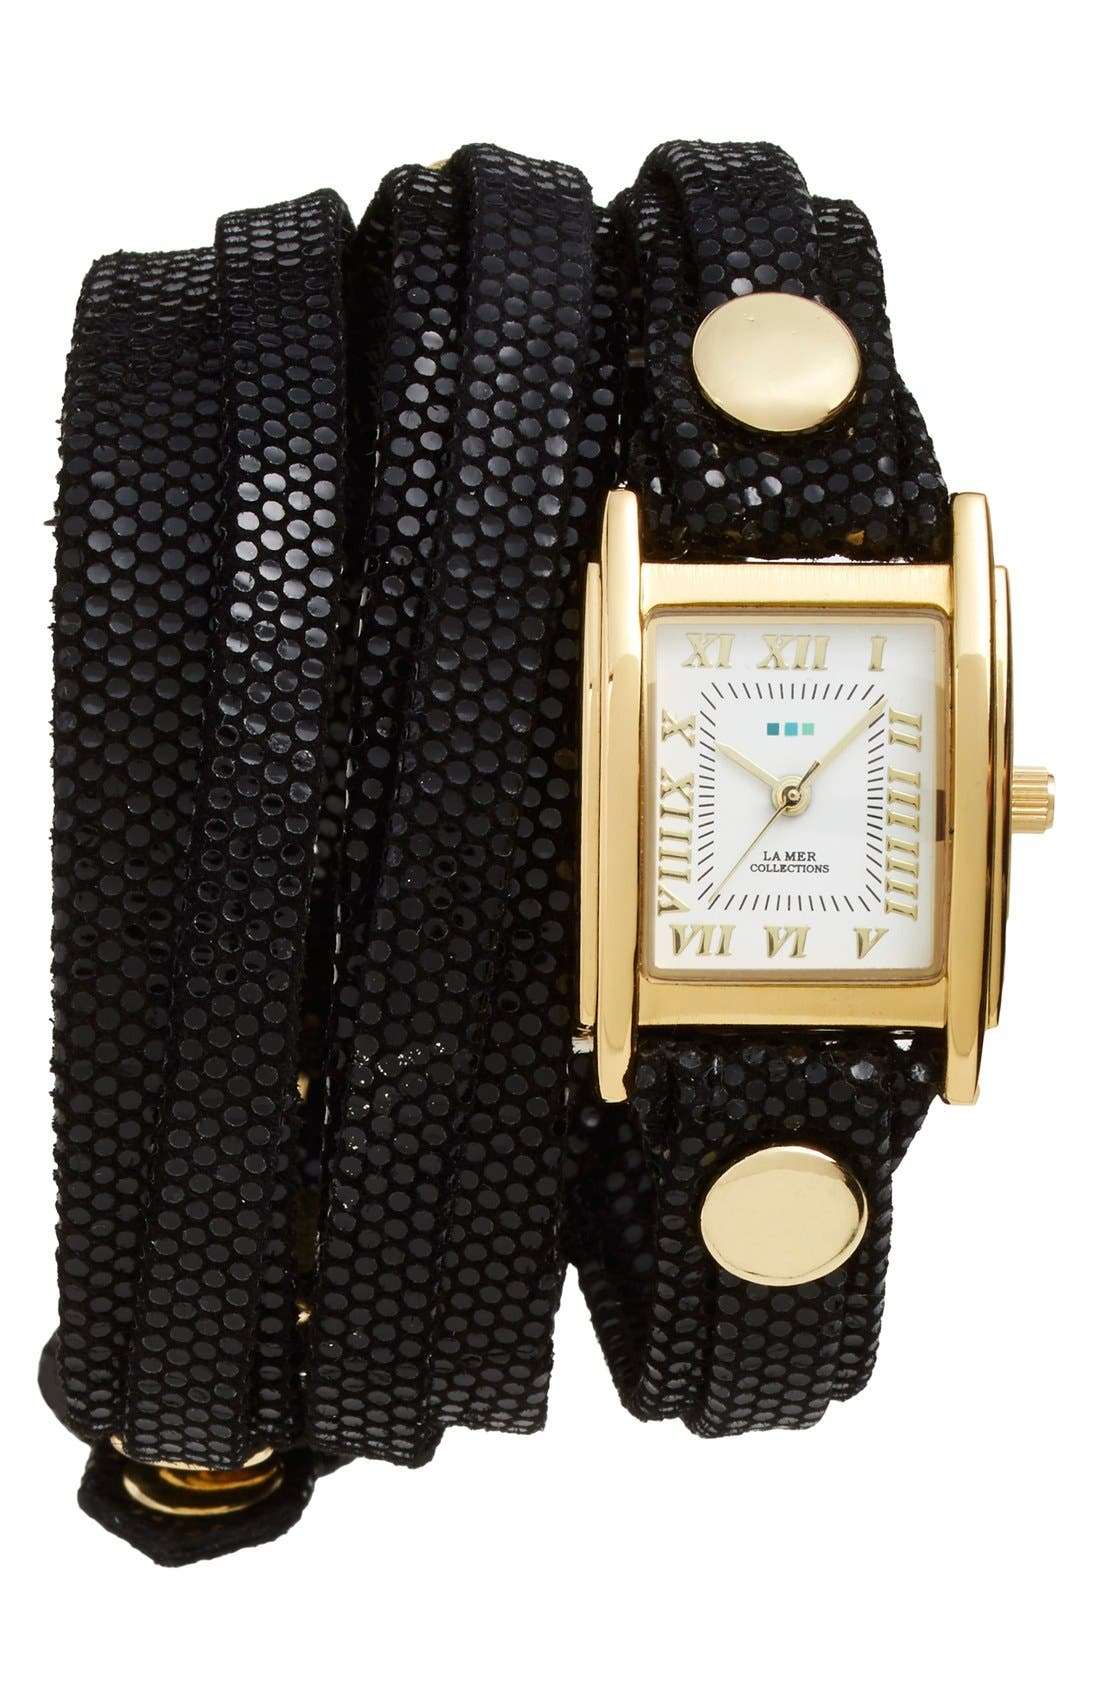 Main Image - La Mer Collections Leather Strap Wrap Watch, 28mm